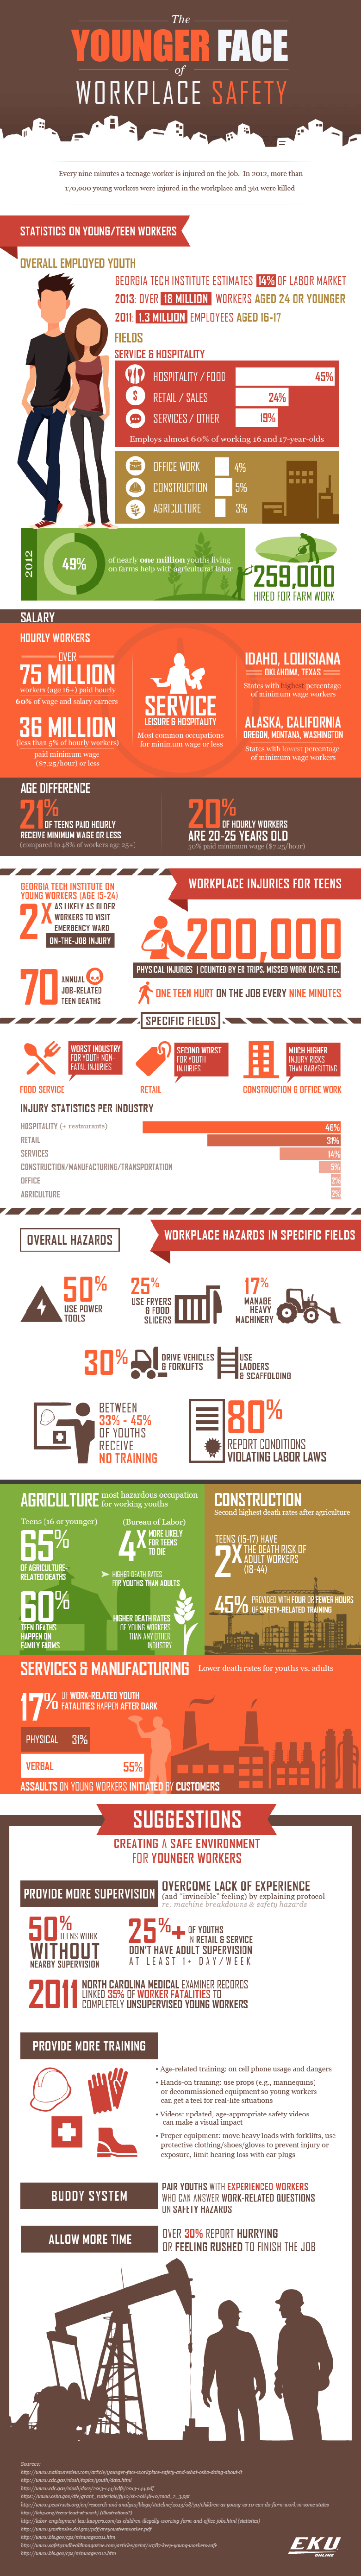 Infographic on The Younger Face of Workplace Safety